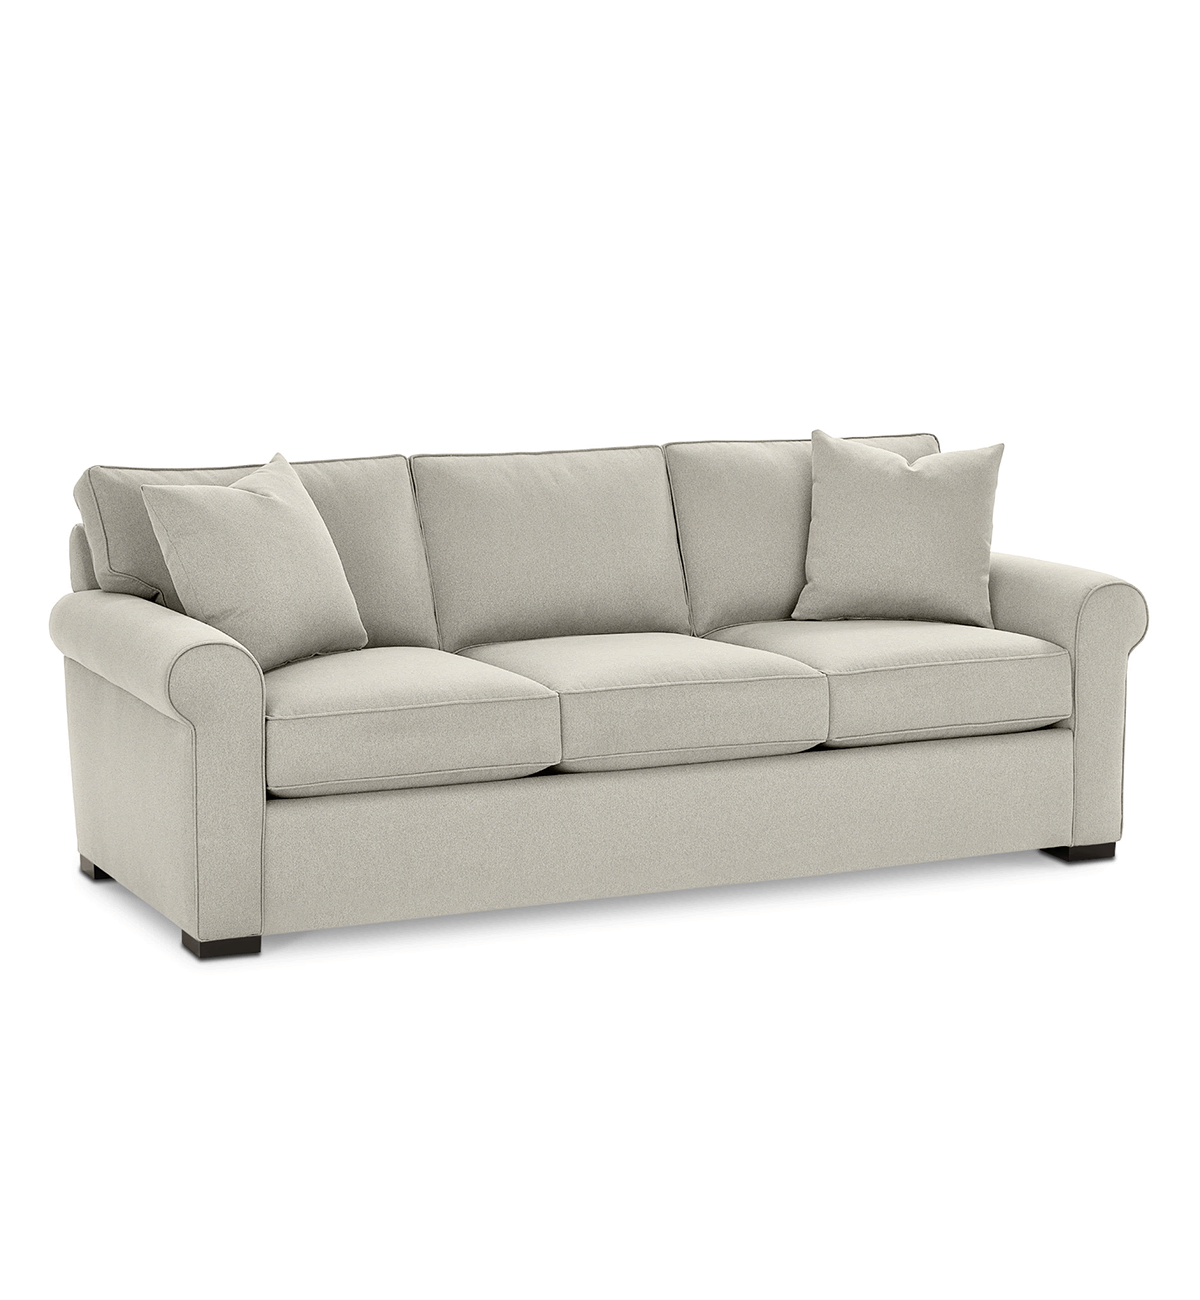 Couches And Sofas Sectional Sofas Couches And Sofas Macy 39s